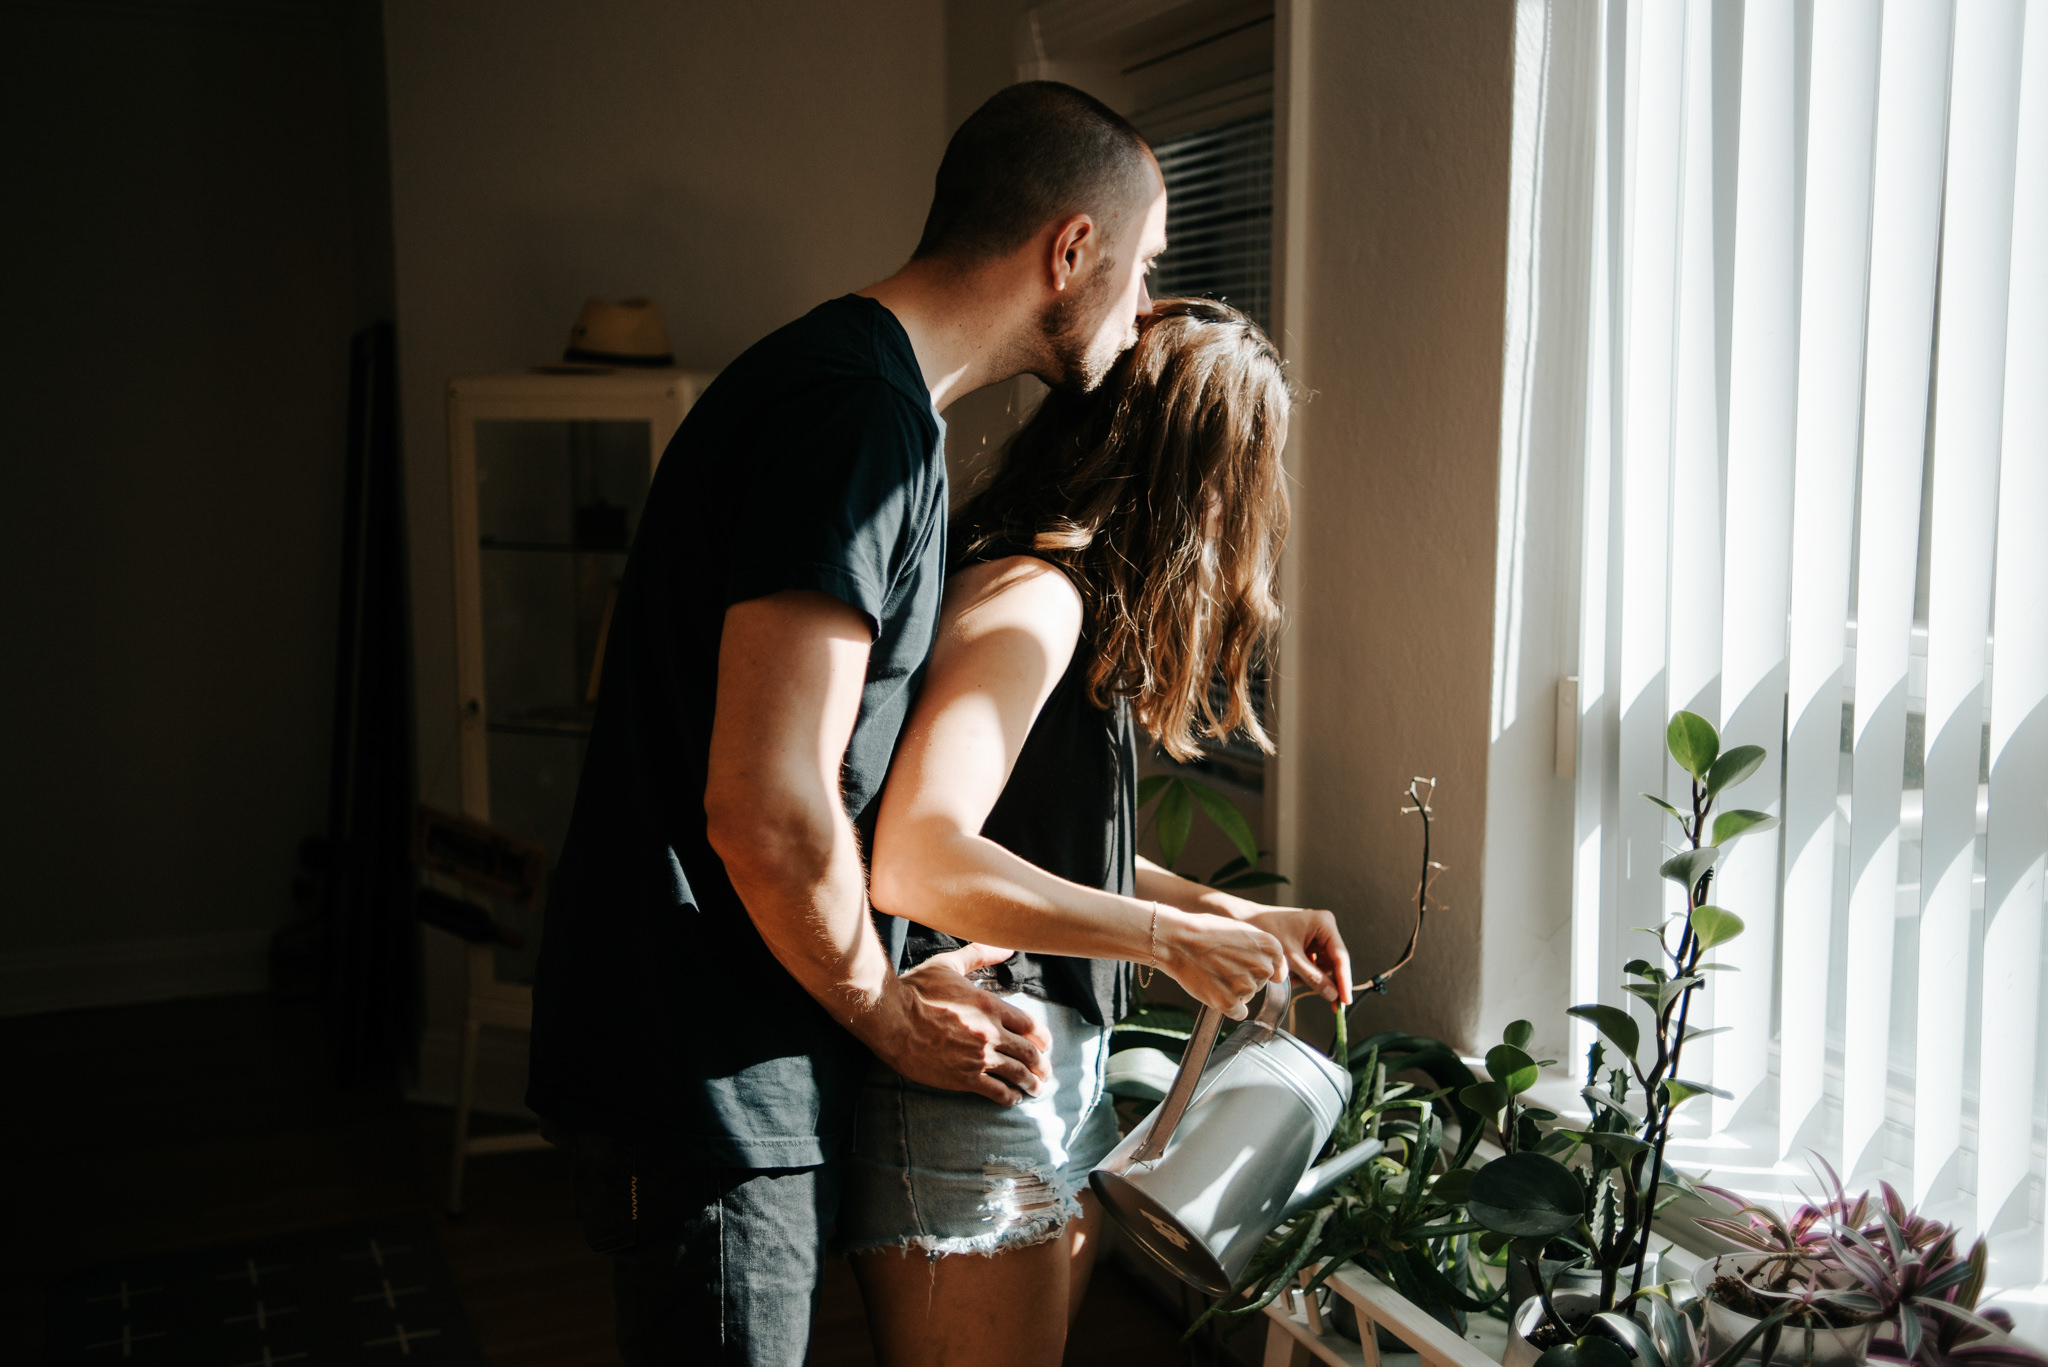 Guy hugging girl from behind as she waters plants in apartment